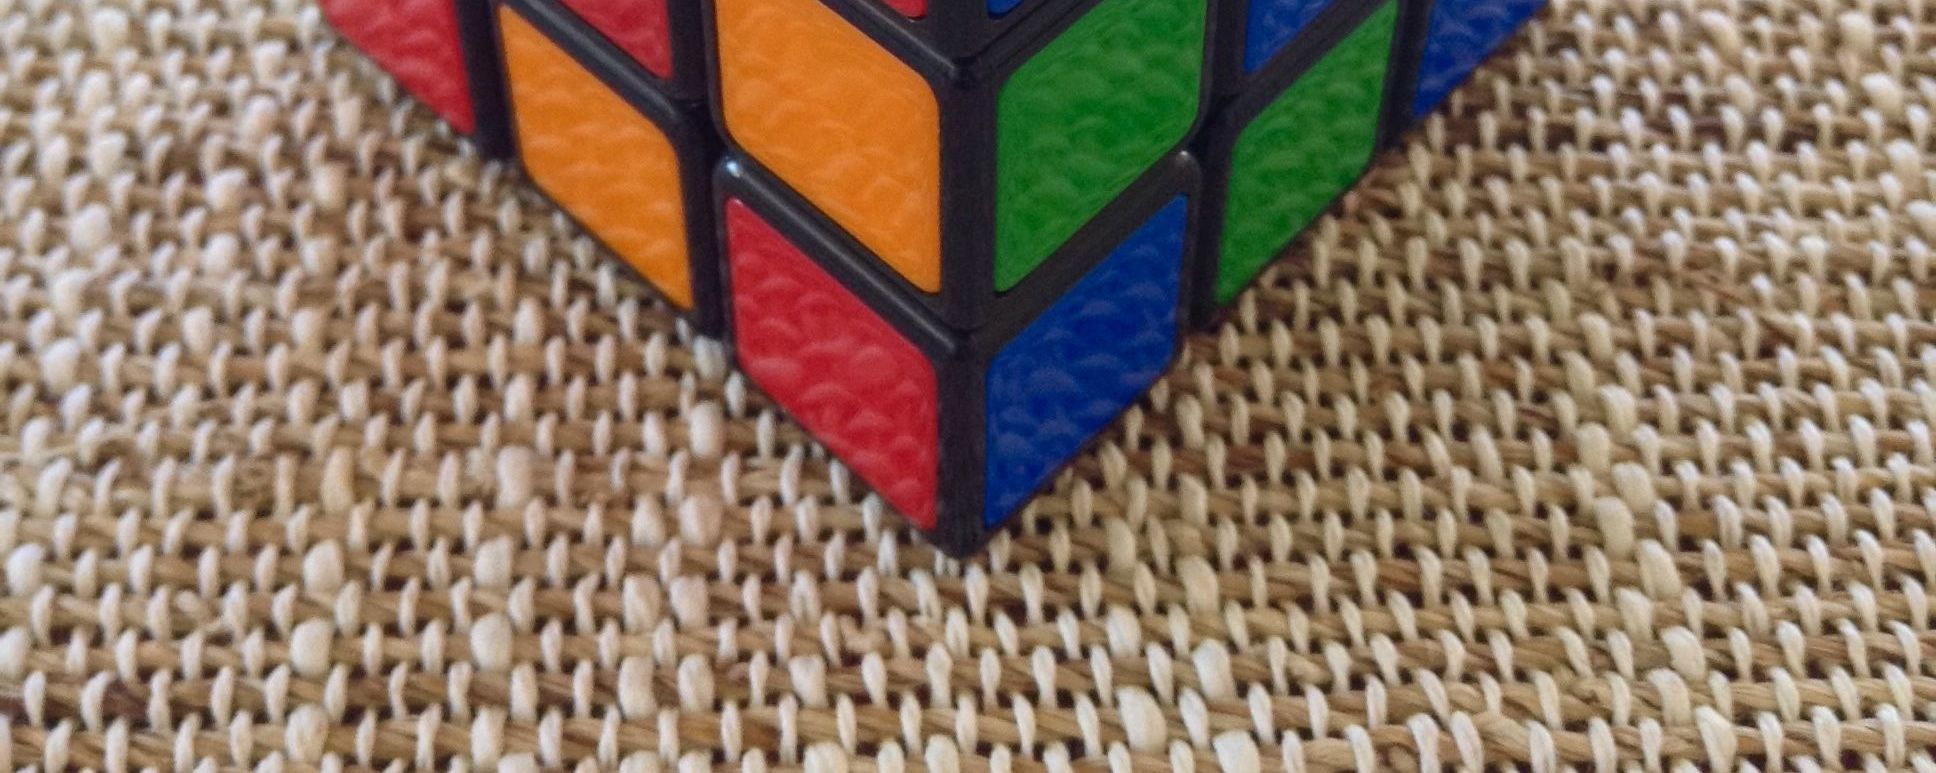 How to make a checkerboard with a Rubik's cube